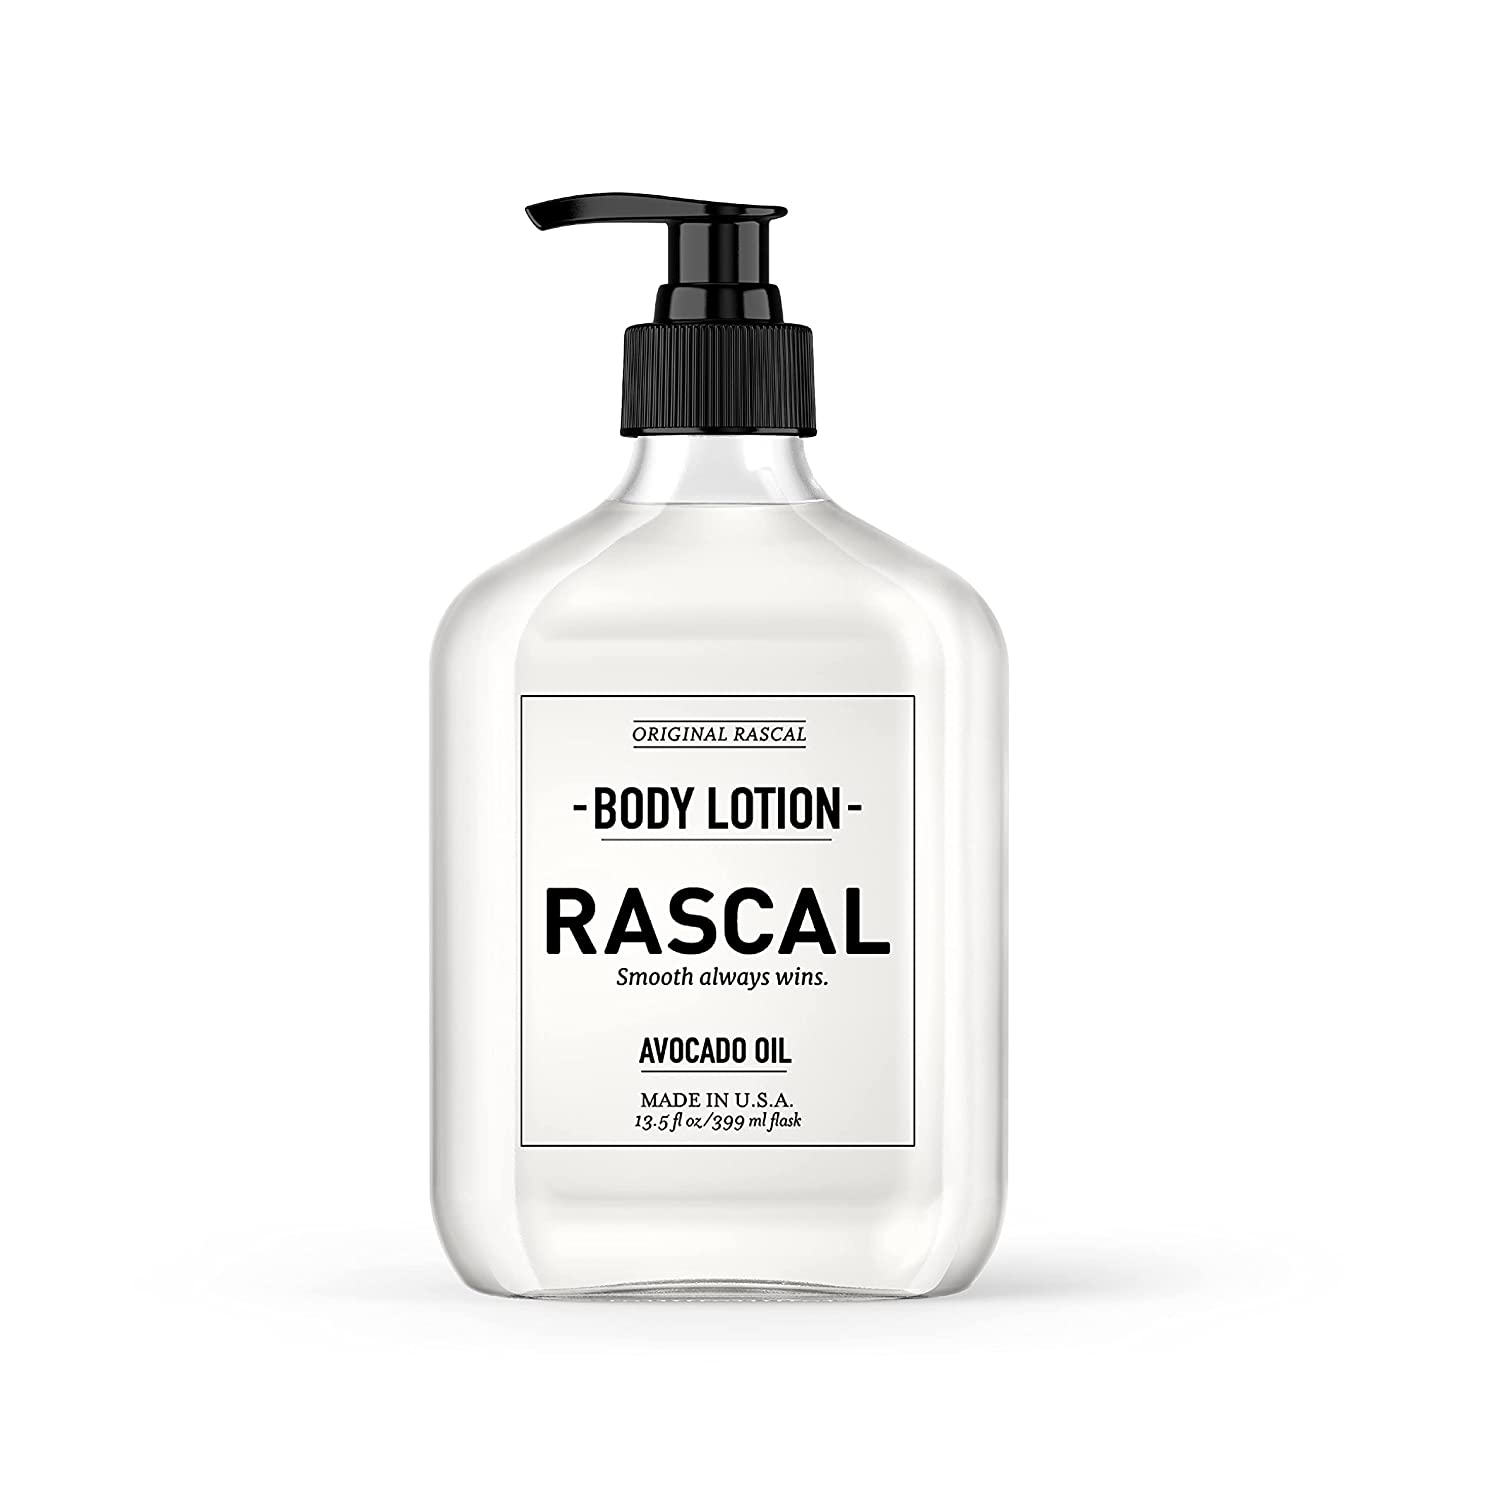 Rascal Body Lotion for Men - Max 71% OFF Avocado Oil Jojoba Spring new work one after another